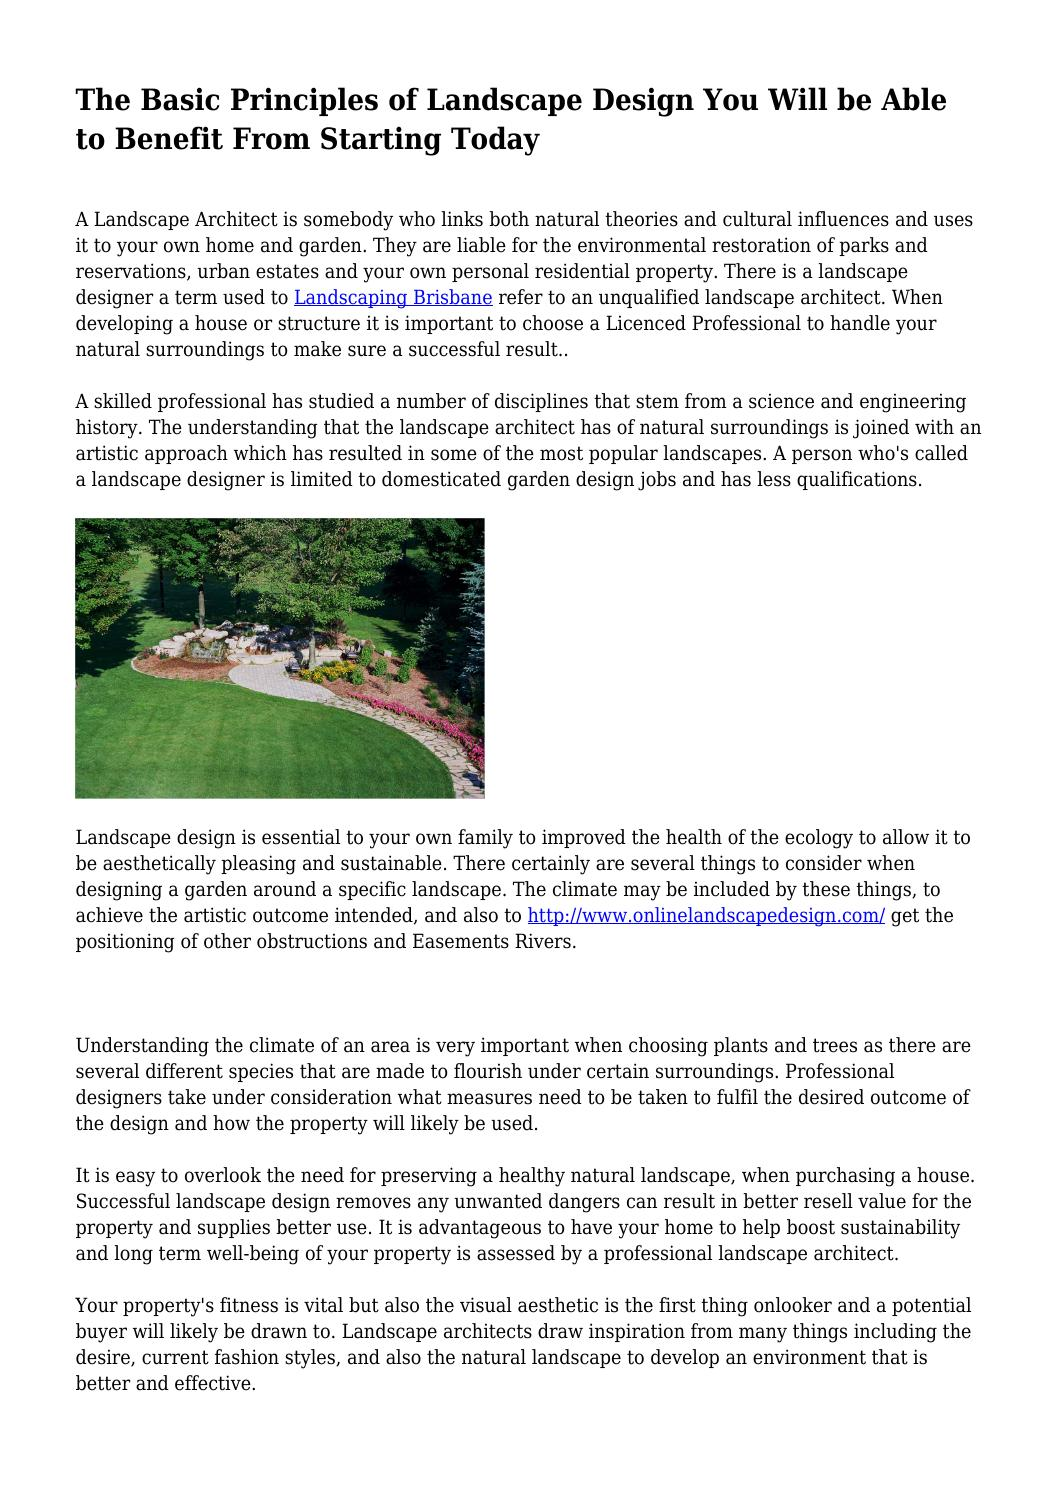 The Basic Principles Of Landscape Design You Will Be Able To Benefit From Starting Today By Guy3344 Issuu,Wood Railing Modern Steel Stair Railing Design